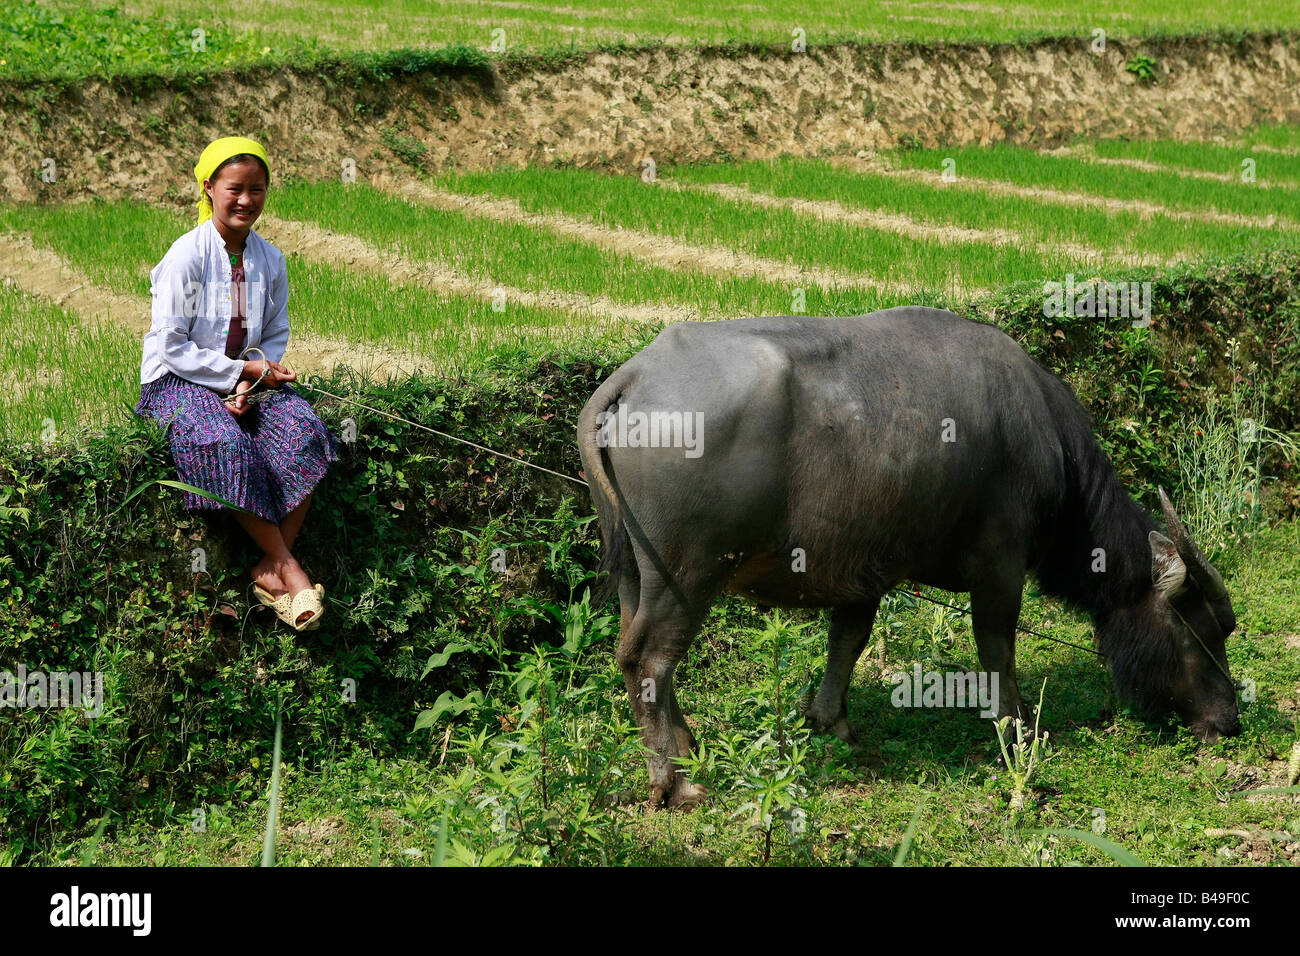 White Hmong Tribeswoman And Buffalo At The Village Of Pho Lao Dong Stock Photo Alamy